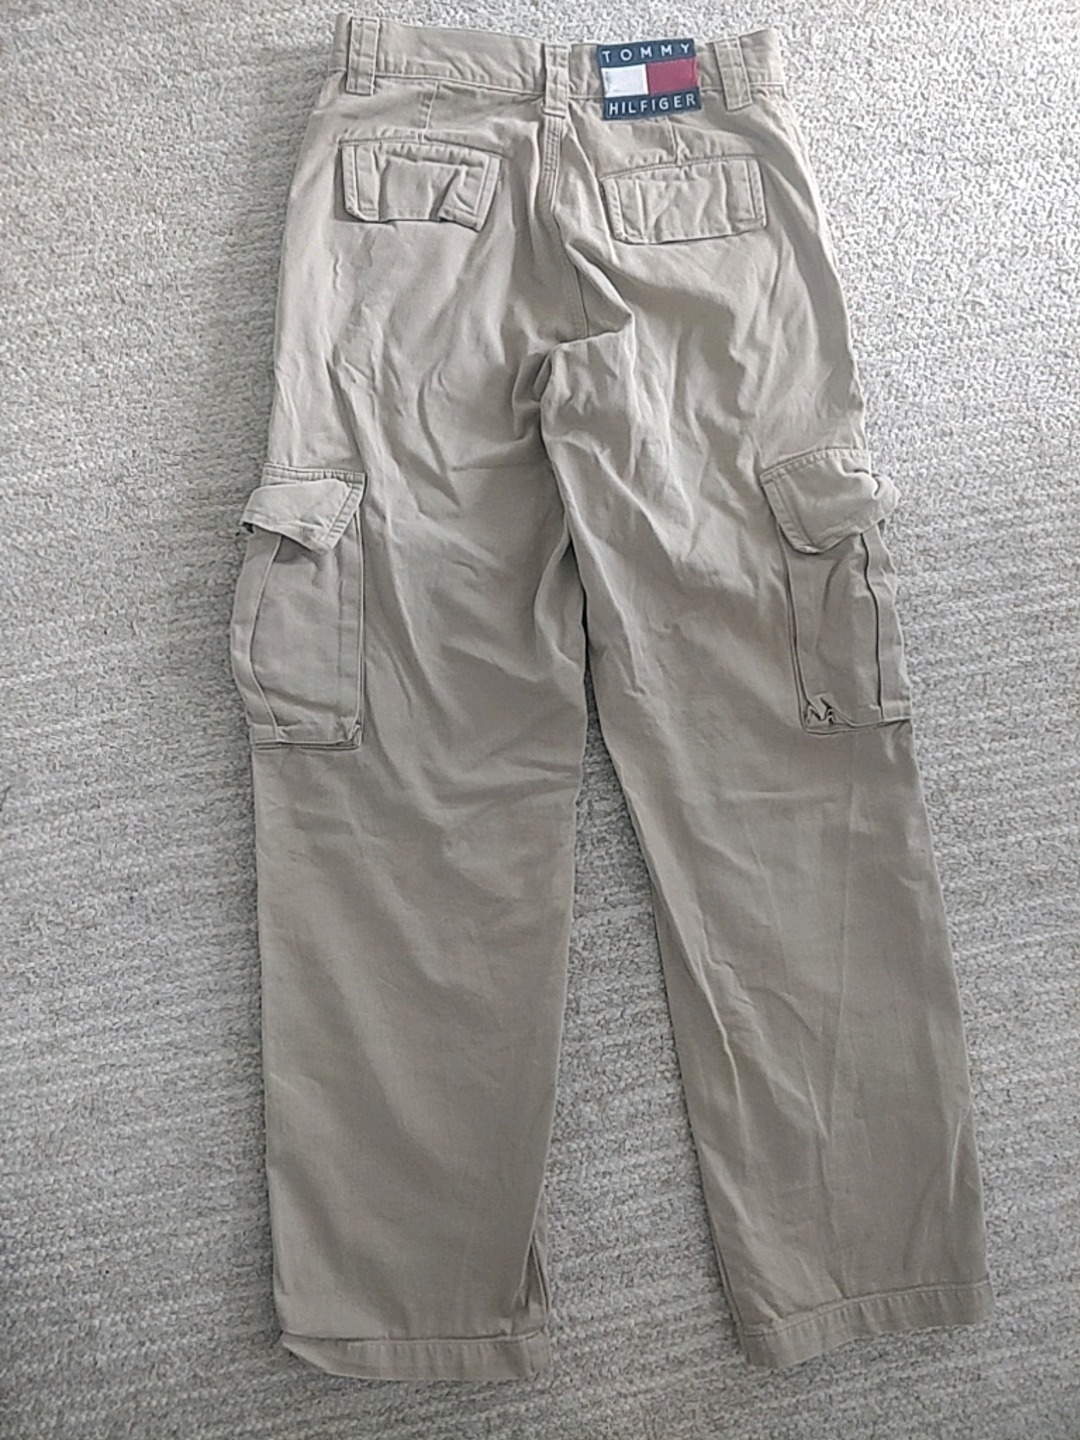 Women's trousers & jeans - TOMMY HILFIGER photo 2